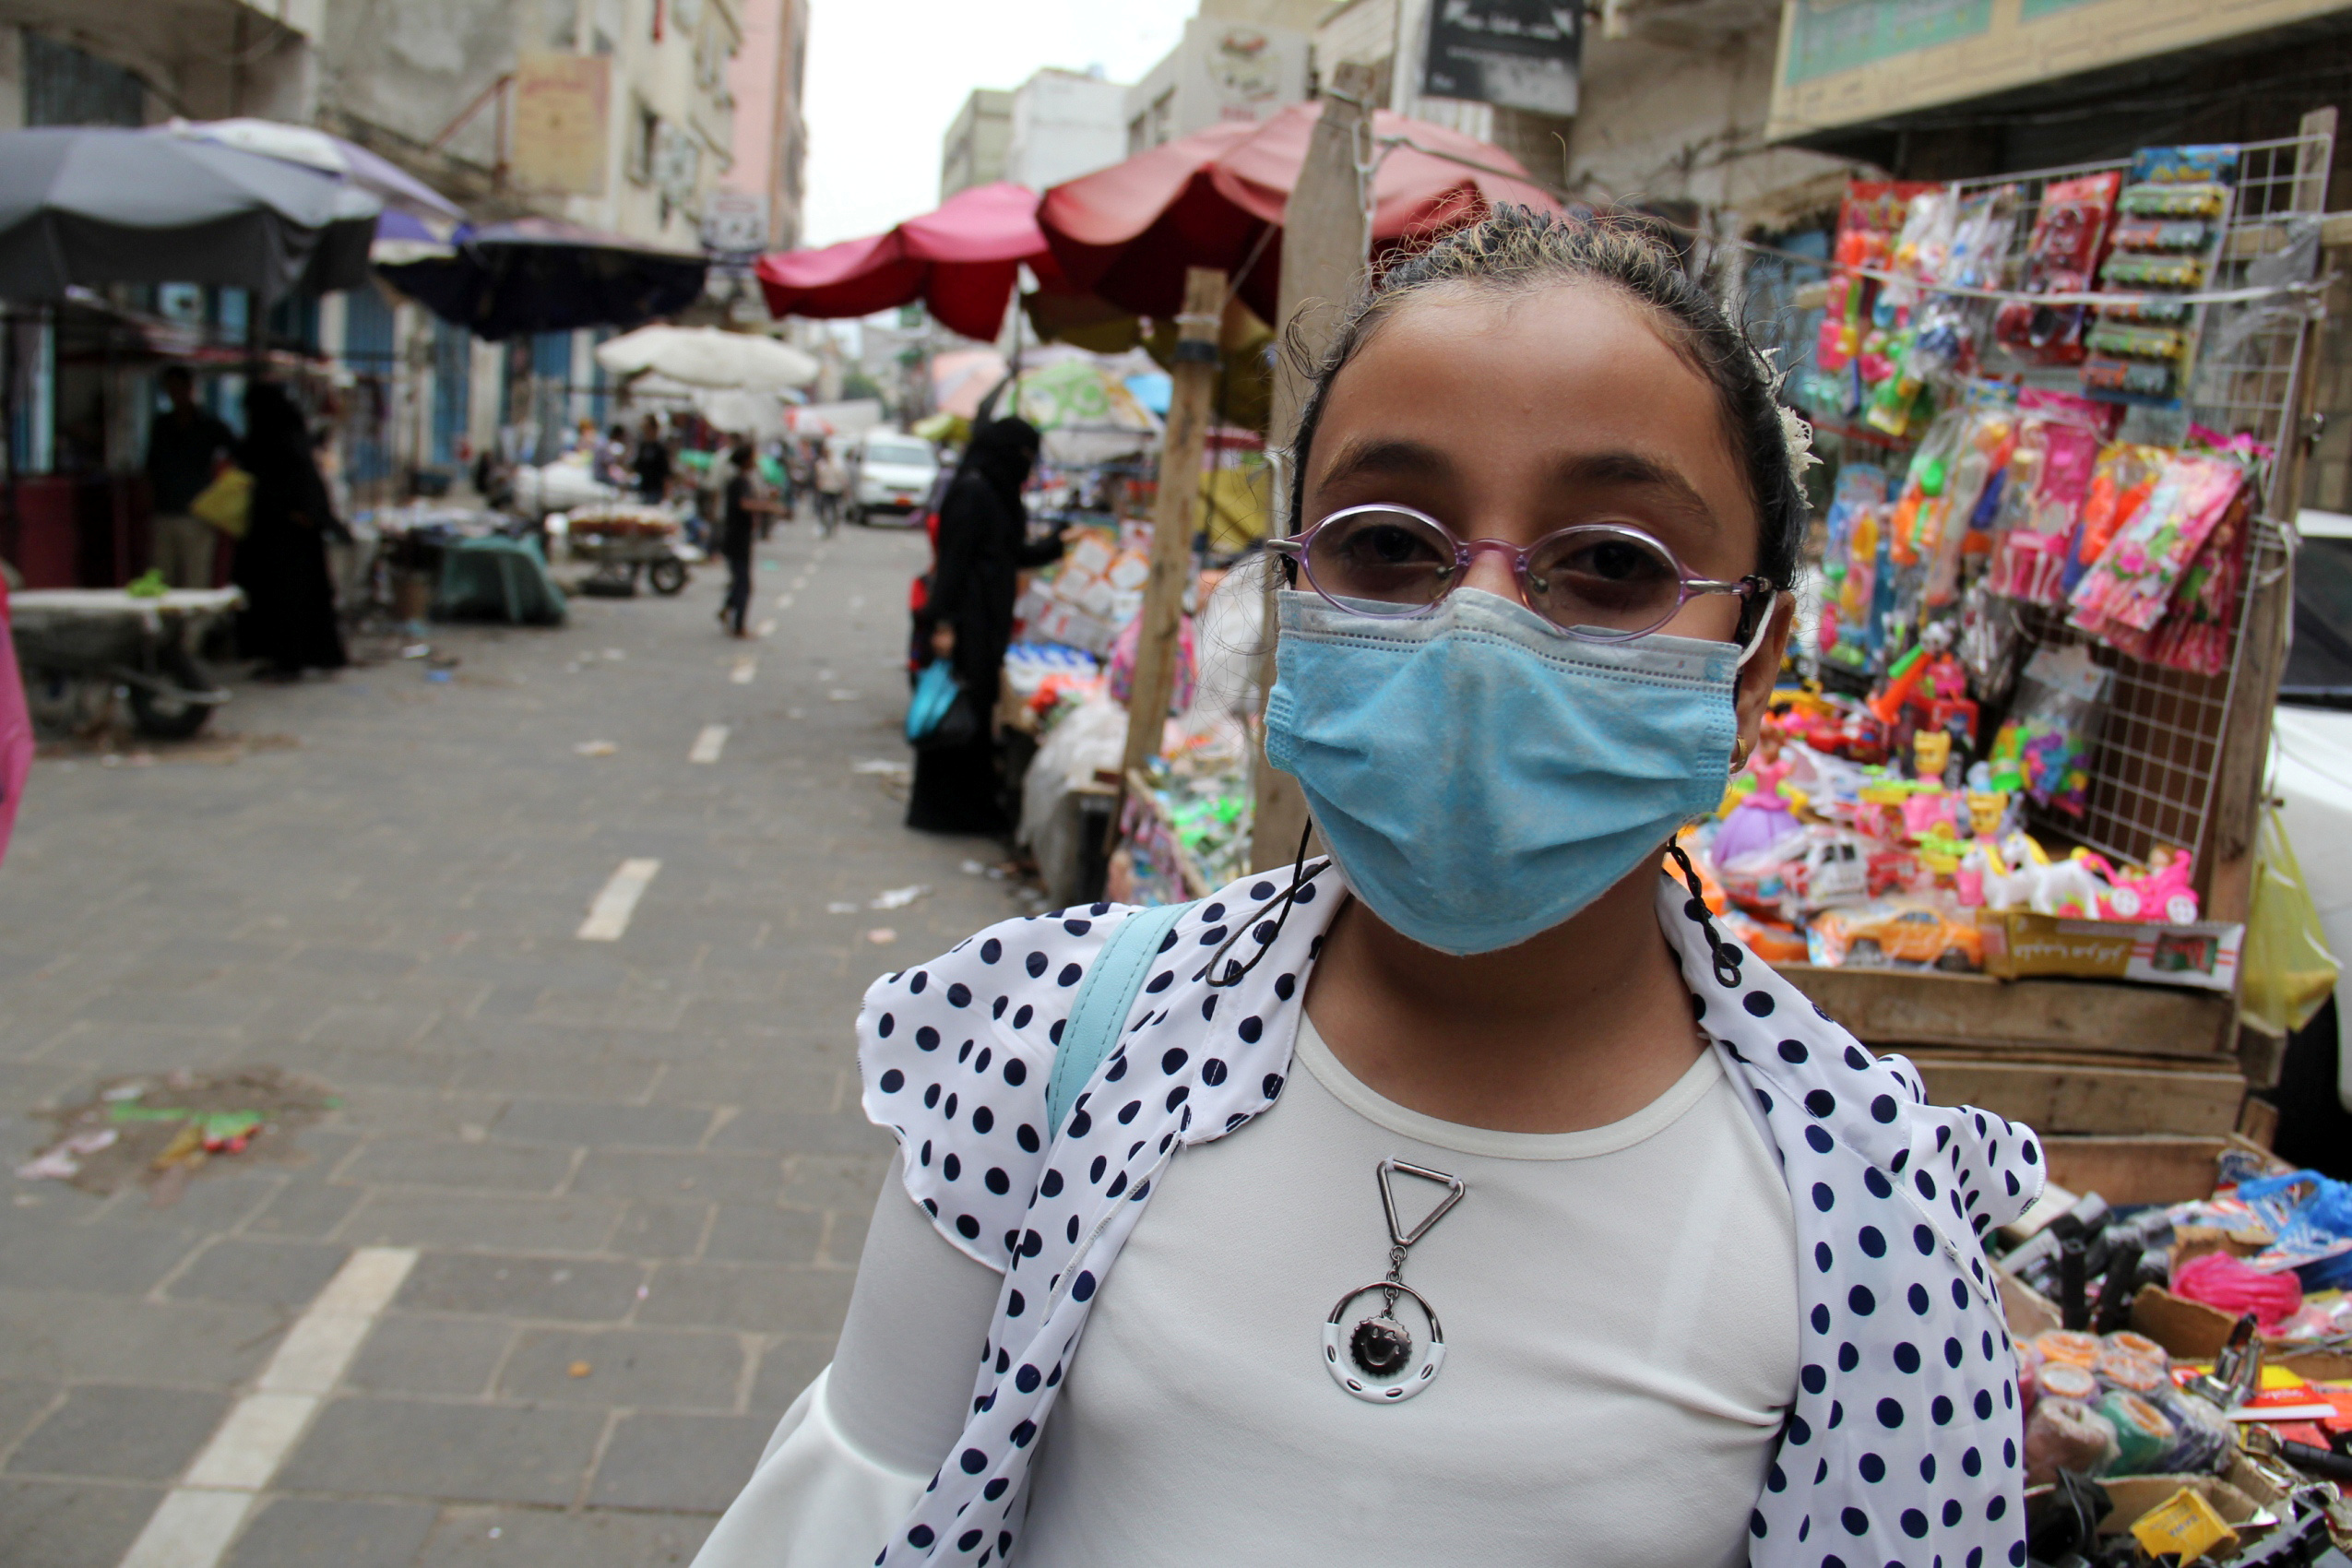 A girl wearing a protective face mask is pictured at a market following the outbreak of the coronavirus disease (COVID-19), in Taiz, Yemen July 5, 2020. Picture taken July 5, 2020. REUTERS/Anees Mahyoub